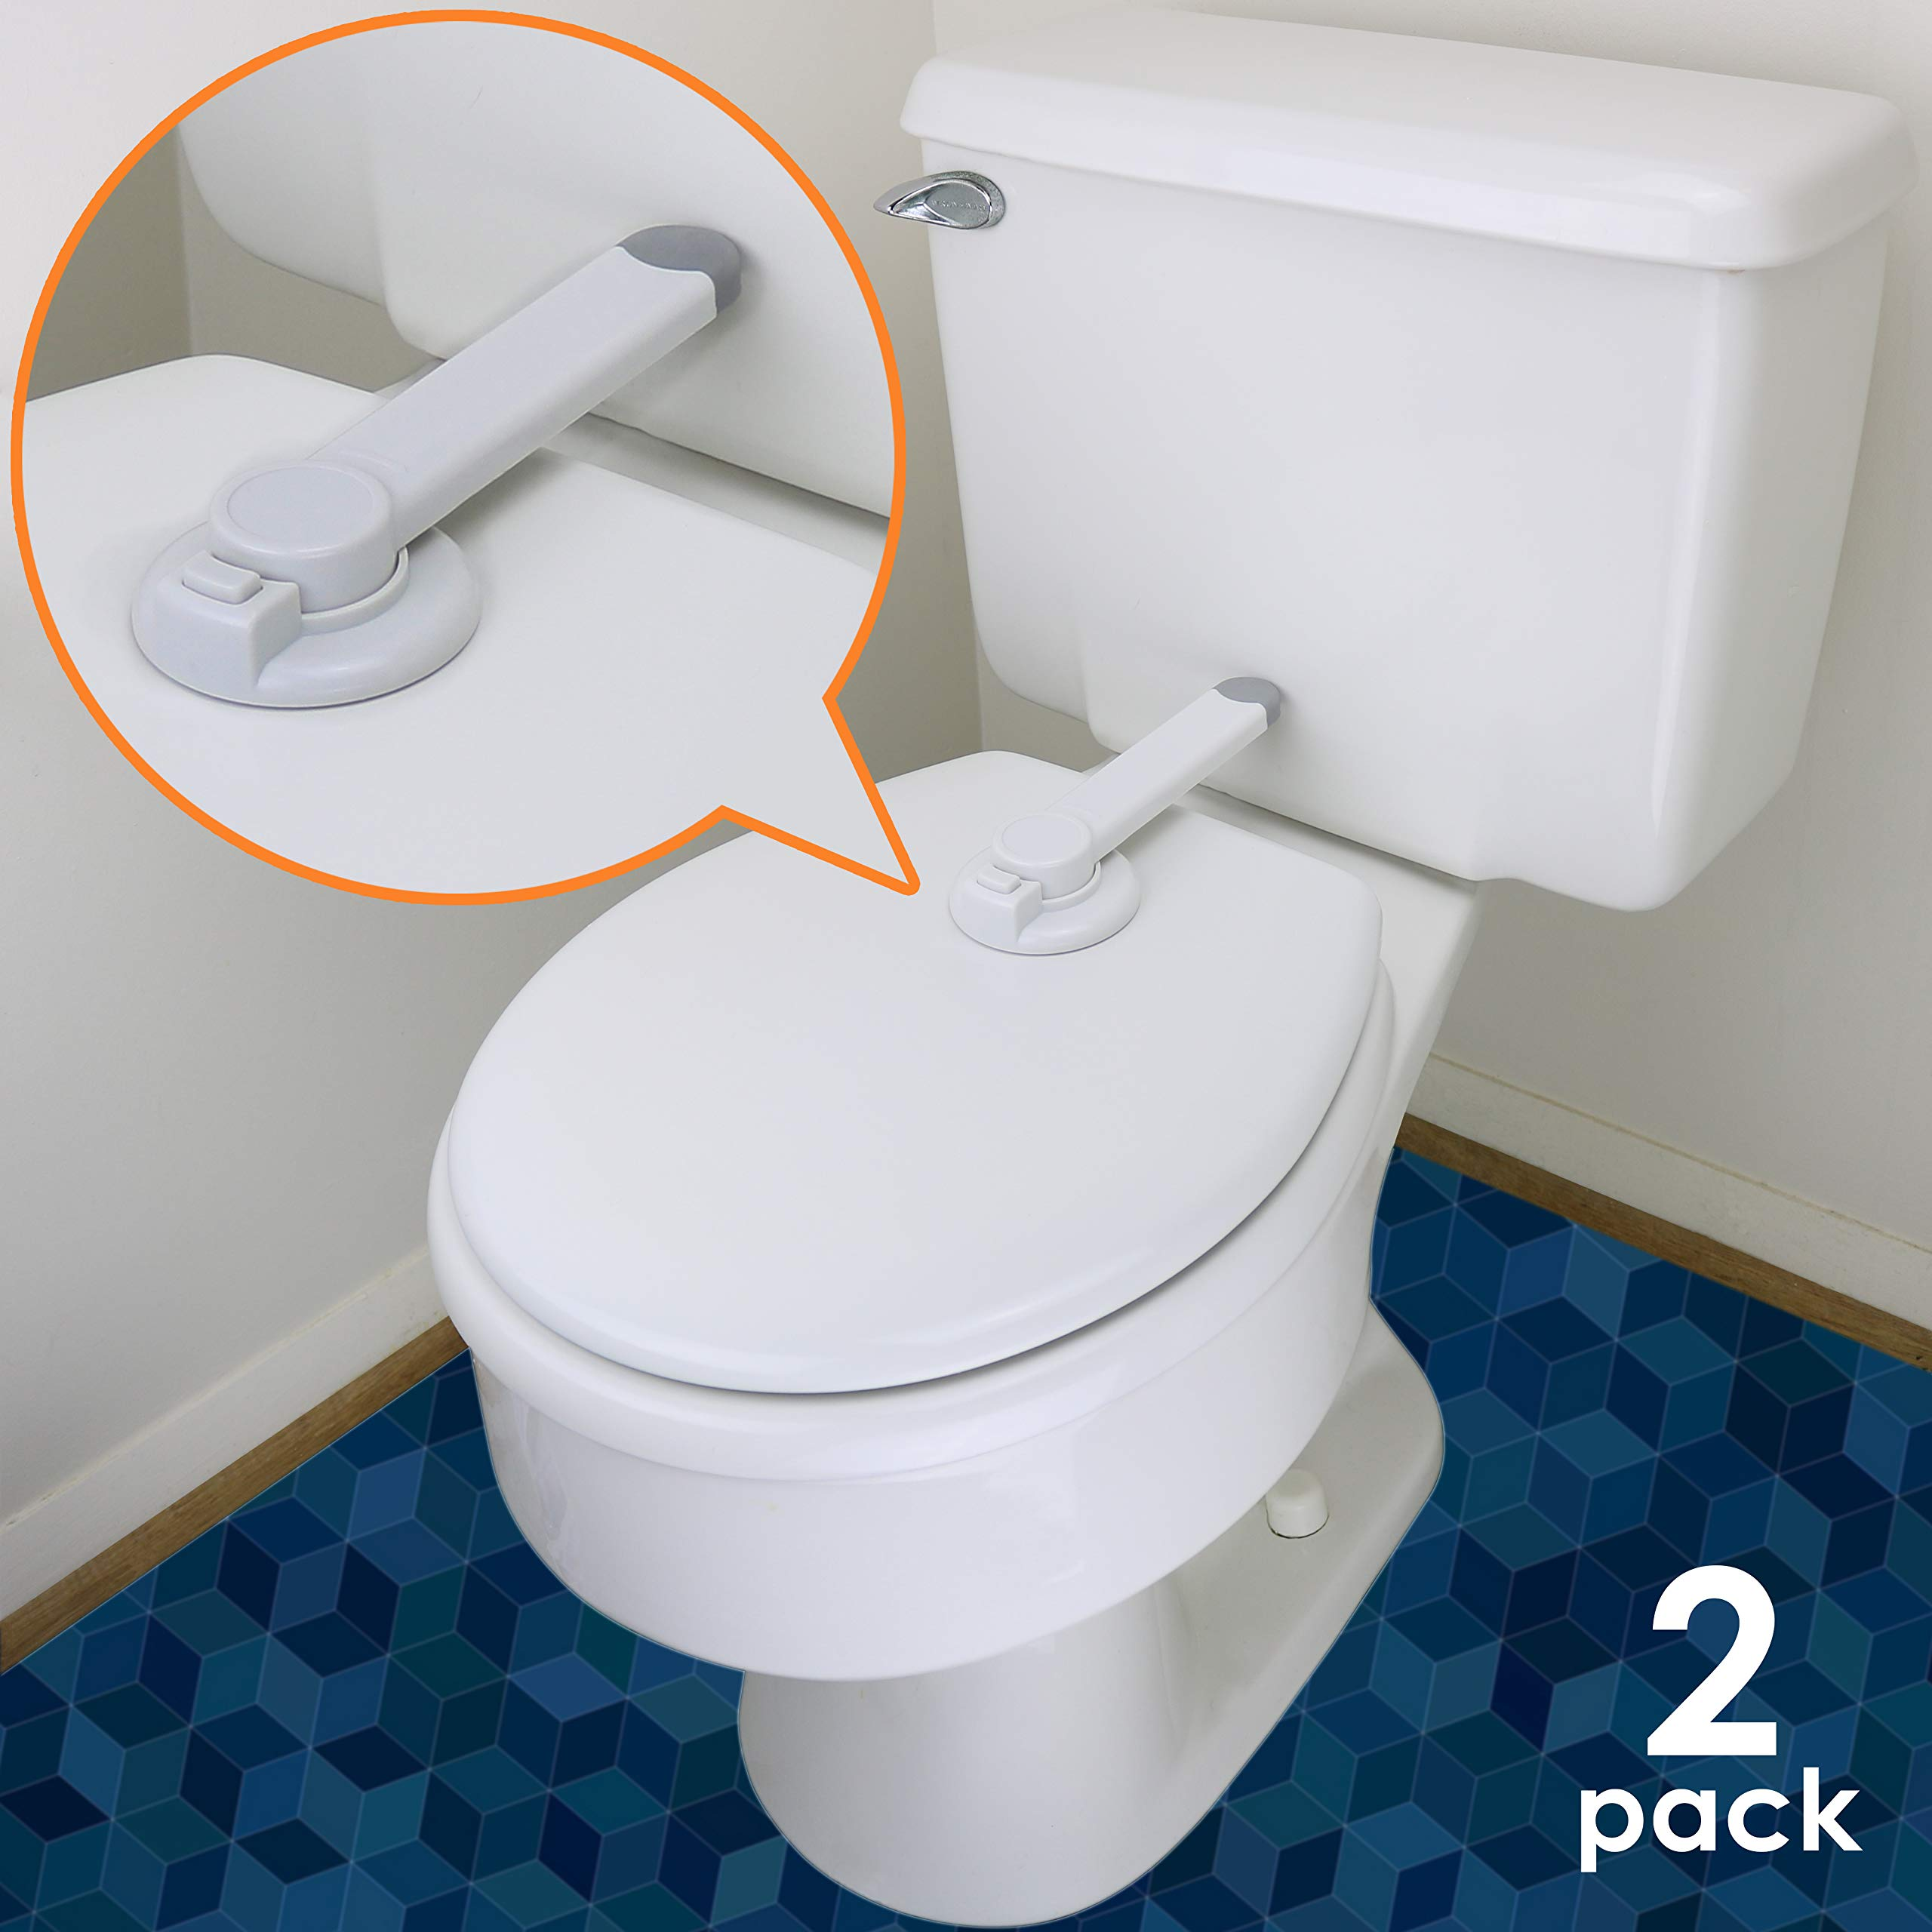 Baby Toilet Lock - Ideal Baby Proof Toilet Lid Lock with Arm - No Tools Needed Easy Installation with 3M Adhesive - Top Safety Toilet Seat Lock - Fits Most Toilets - White (2 Pack, White)